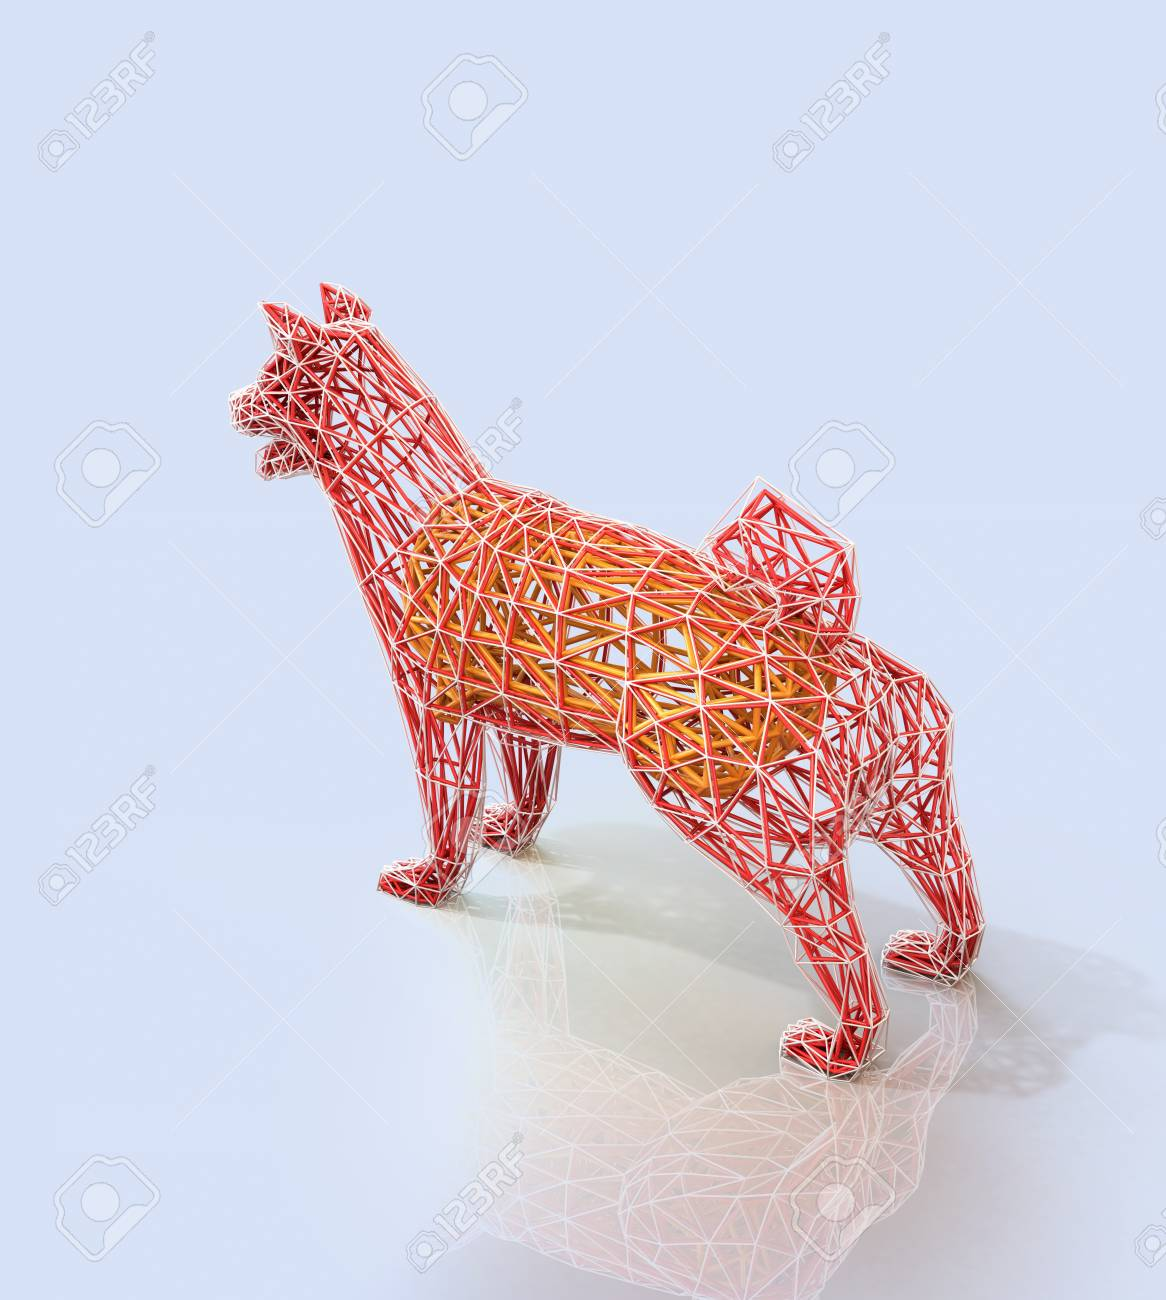 Rear View Of Red Dogs Wire Frame Shape In Low Polygon Style